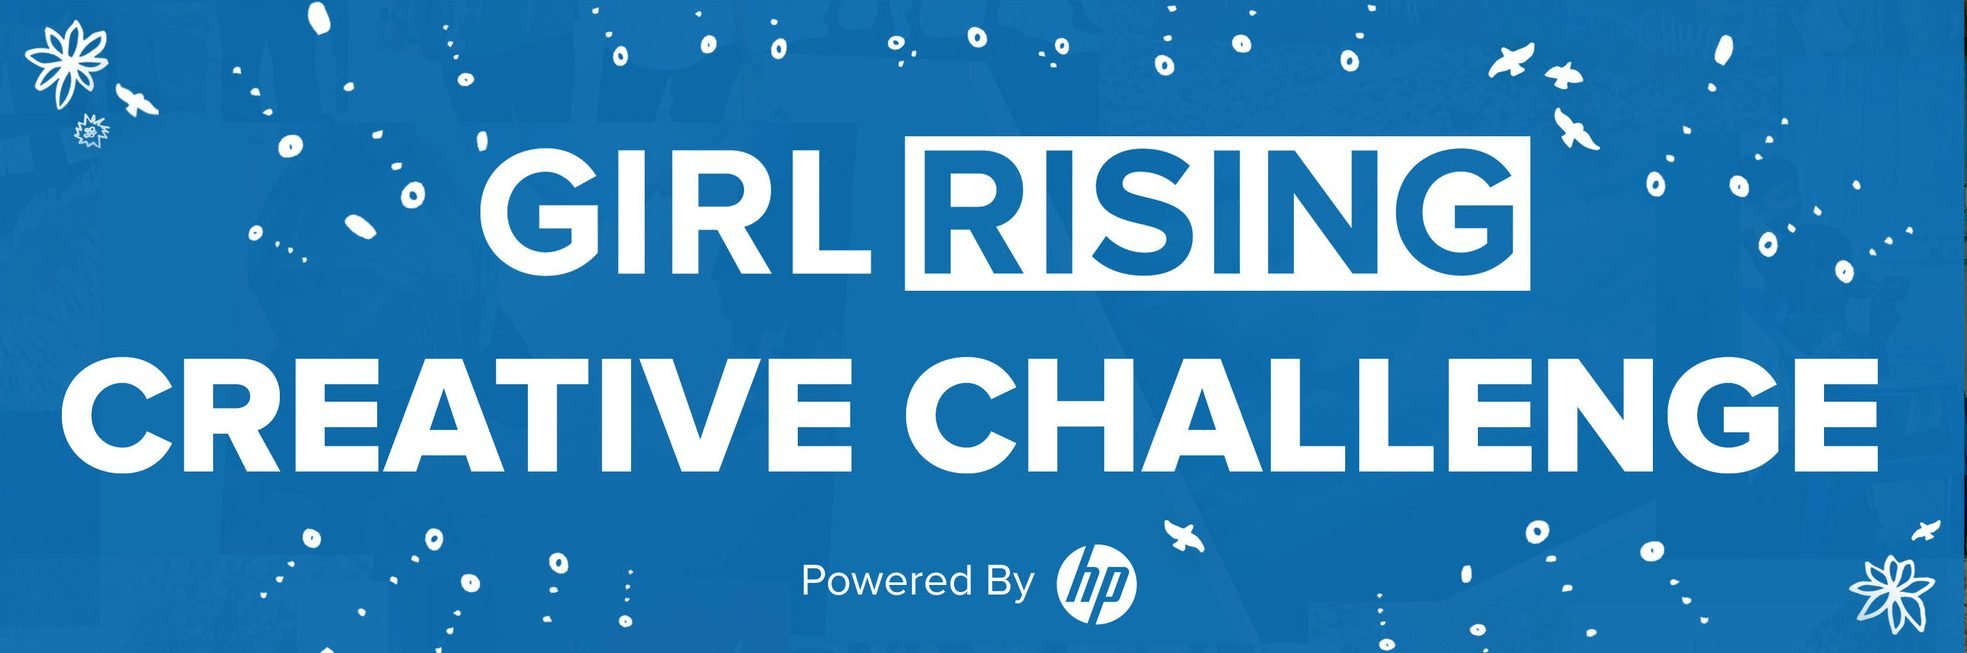 HP Girl Rising Creative Challenge